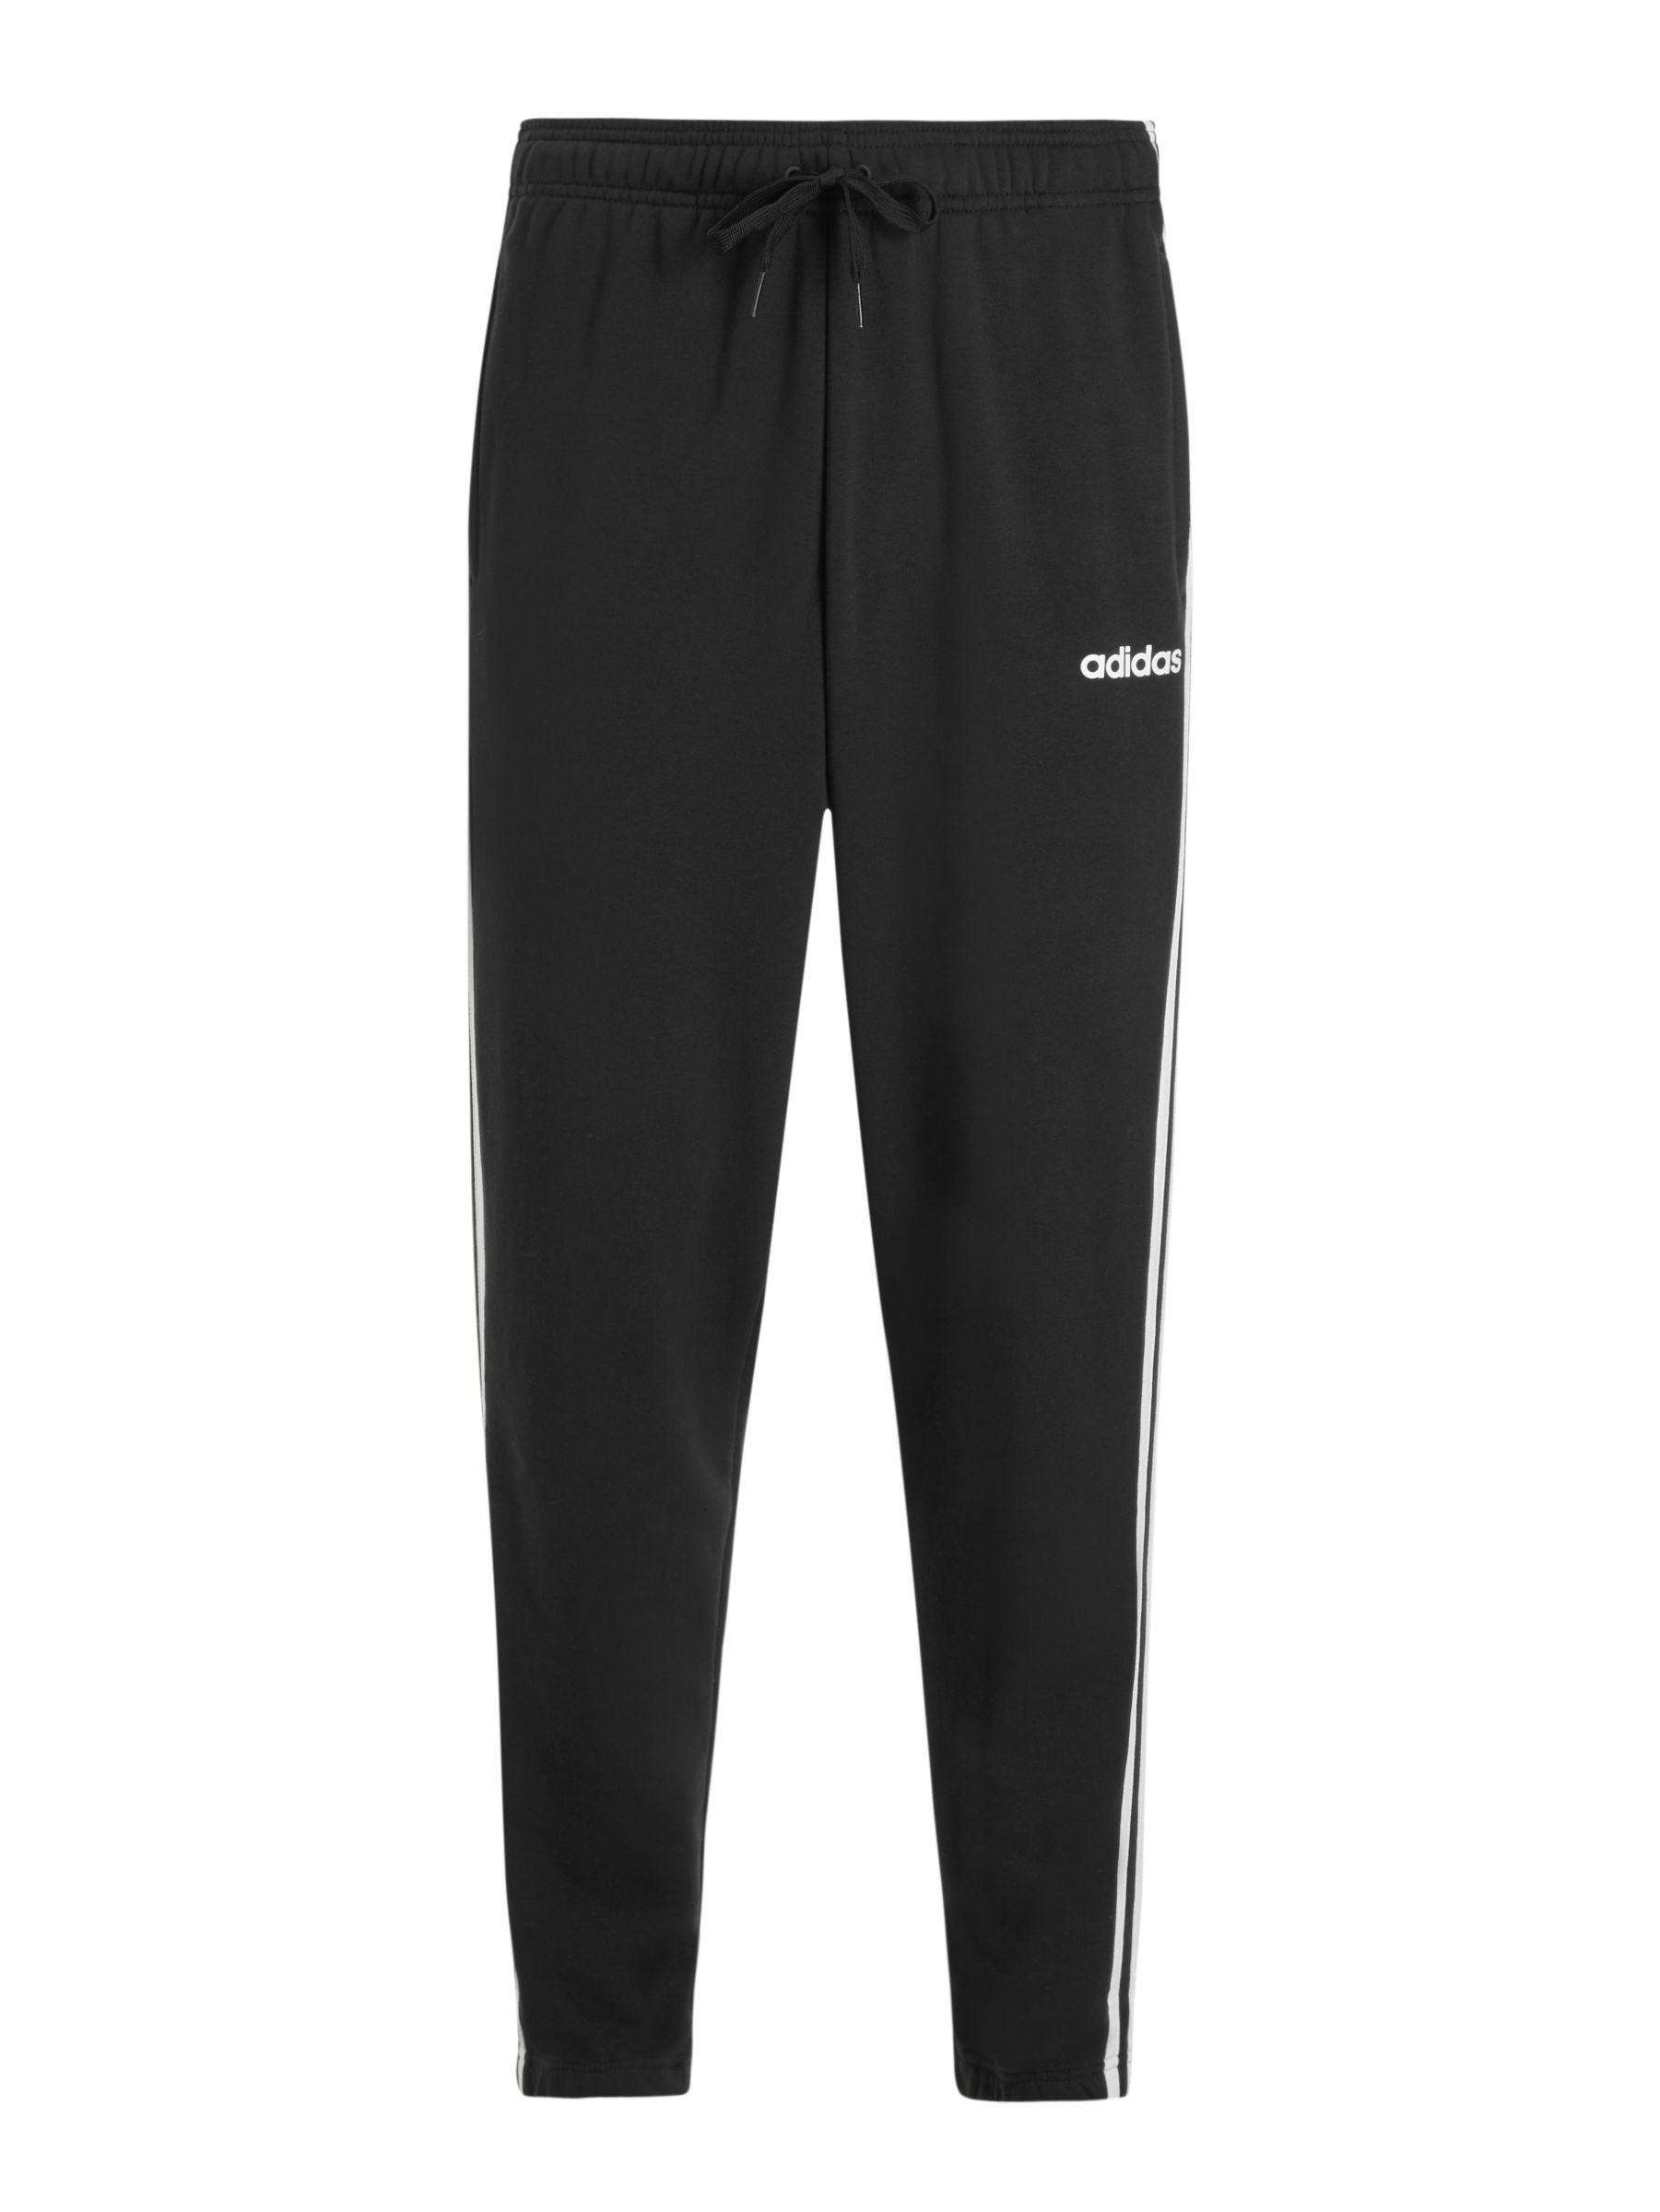 Buy adidas Essentials 3-Stripes Jogging Bottoms, Black, S Online at johnlewis.com